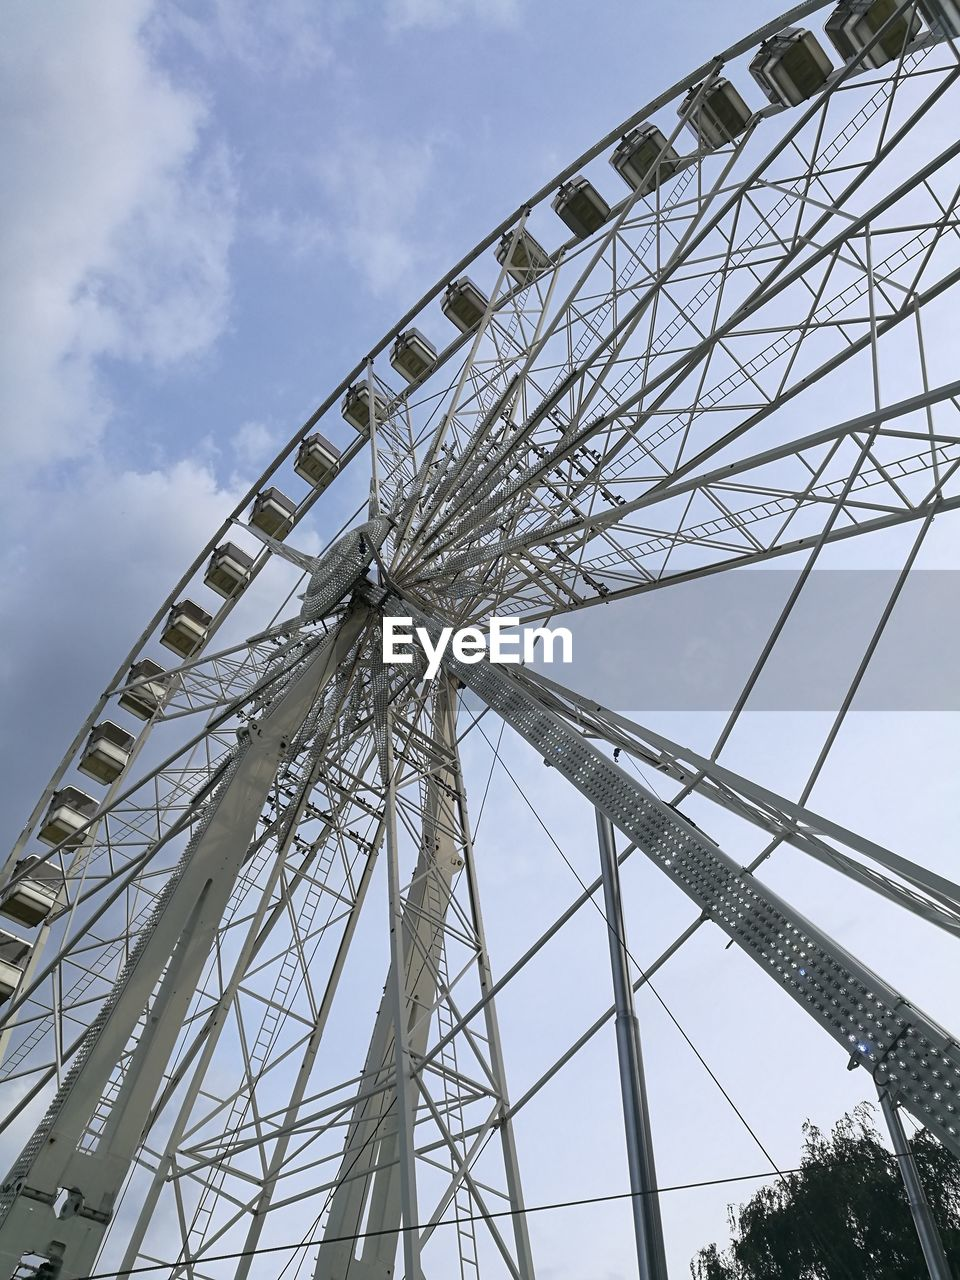 amusement park, arts culture and entertainment, low angle view, ferris wheel, amusement park ride, day, sky, big wheel, no people, outdoors